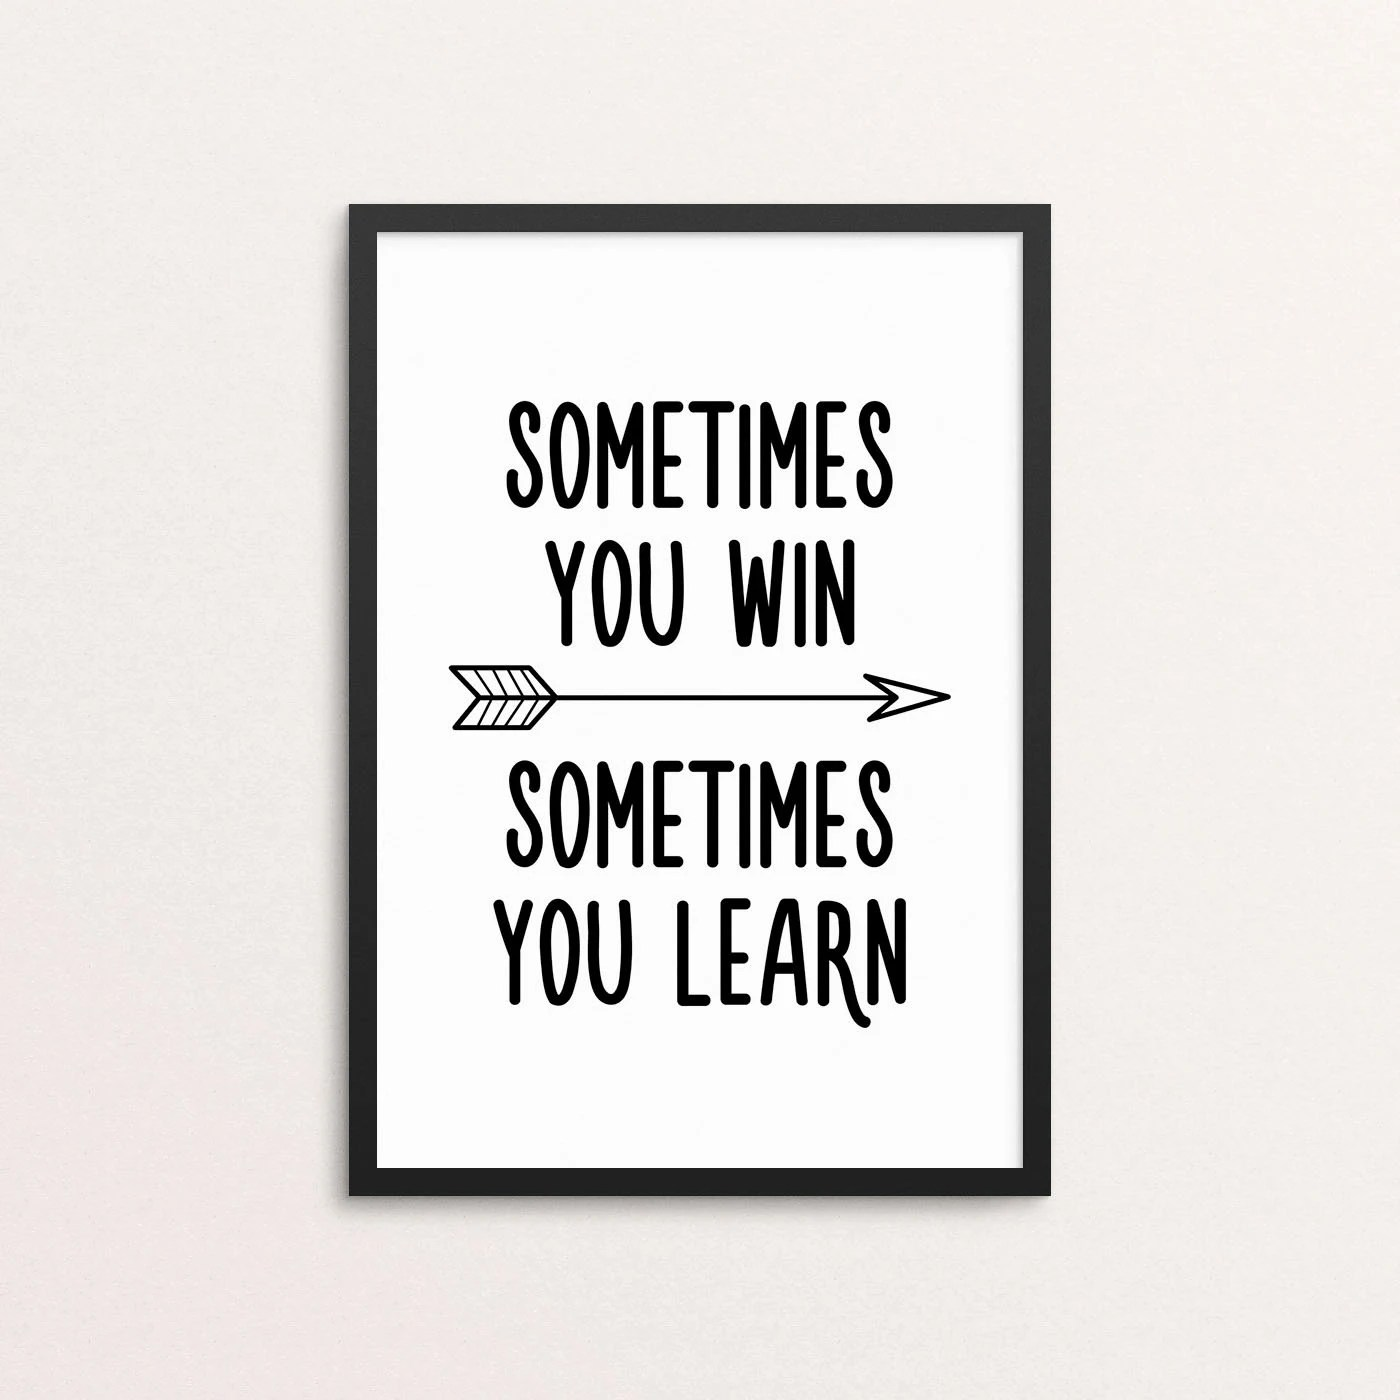 Tappeto Musicale Jump& Sometimes You Win Sometimes You Learn Scandi Style Motivational Home Decor Nursery And Kids Room Digital Download